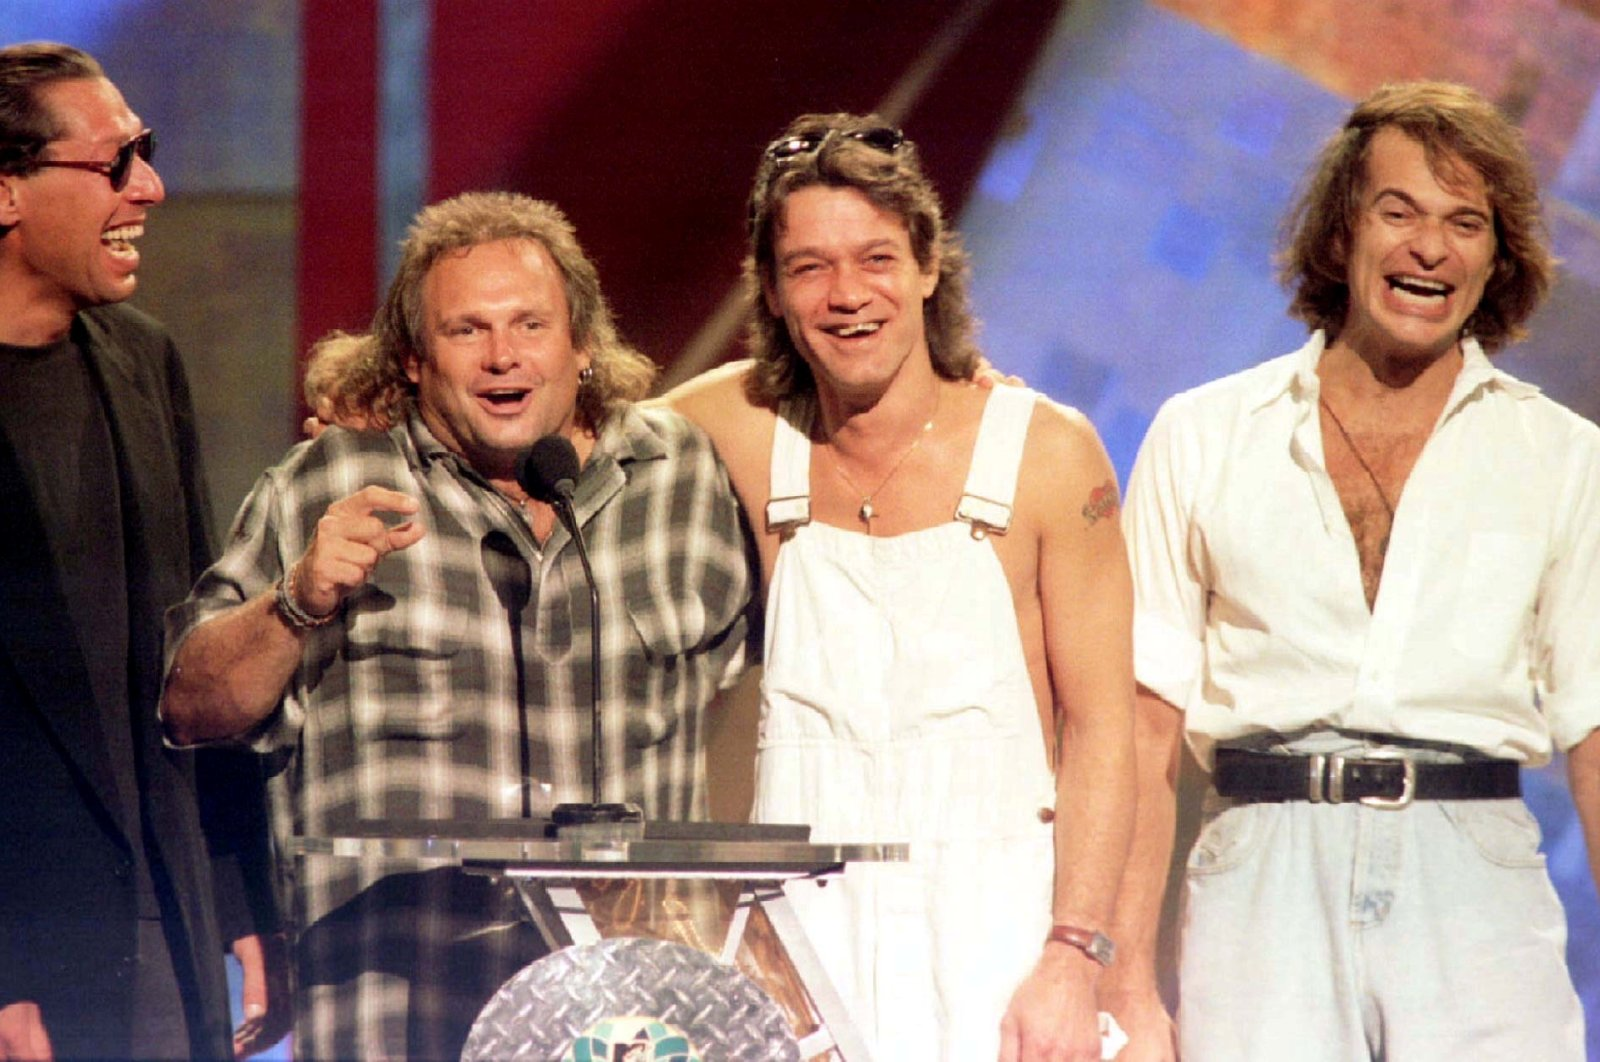 Members of the band Van Halen (L-R) Alex Van Halen, Michael Anthony, Eddie Van Halen are reunited with former lead singer David Lee Roth (R) on stage at the 1996 MTV Video Music Awards in New York on September 4. (Reuters Photo)